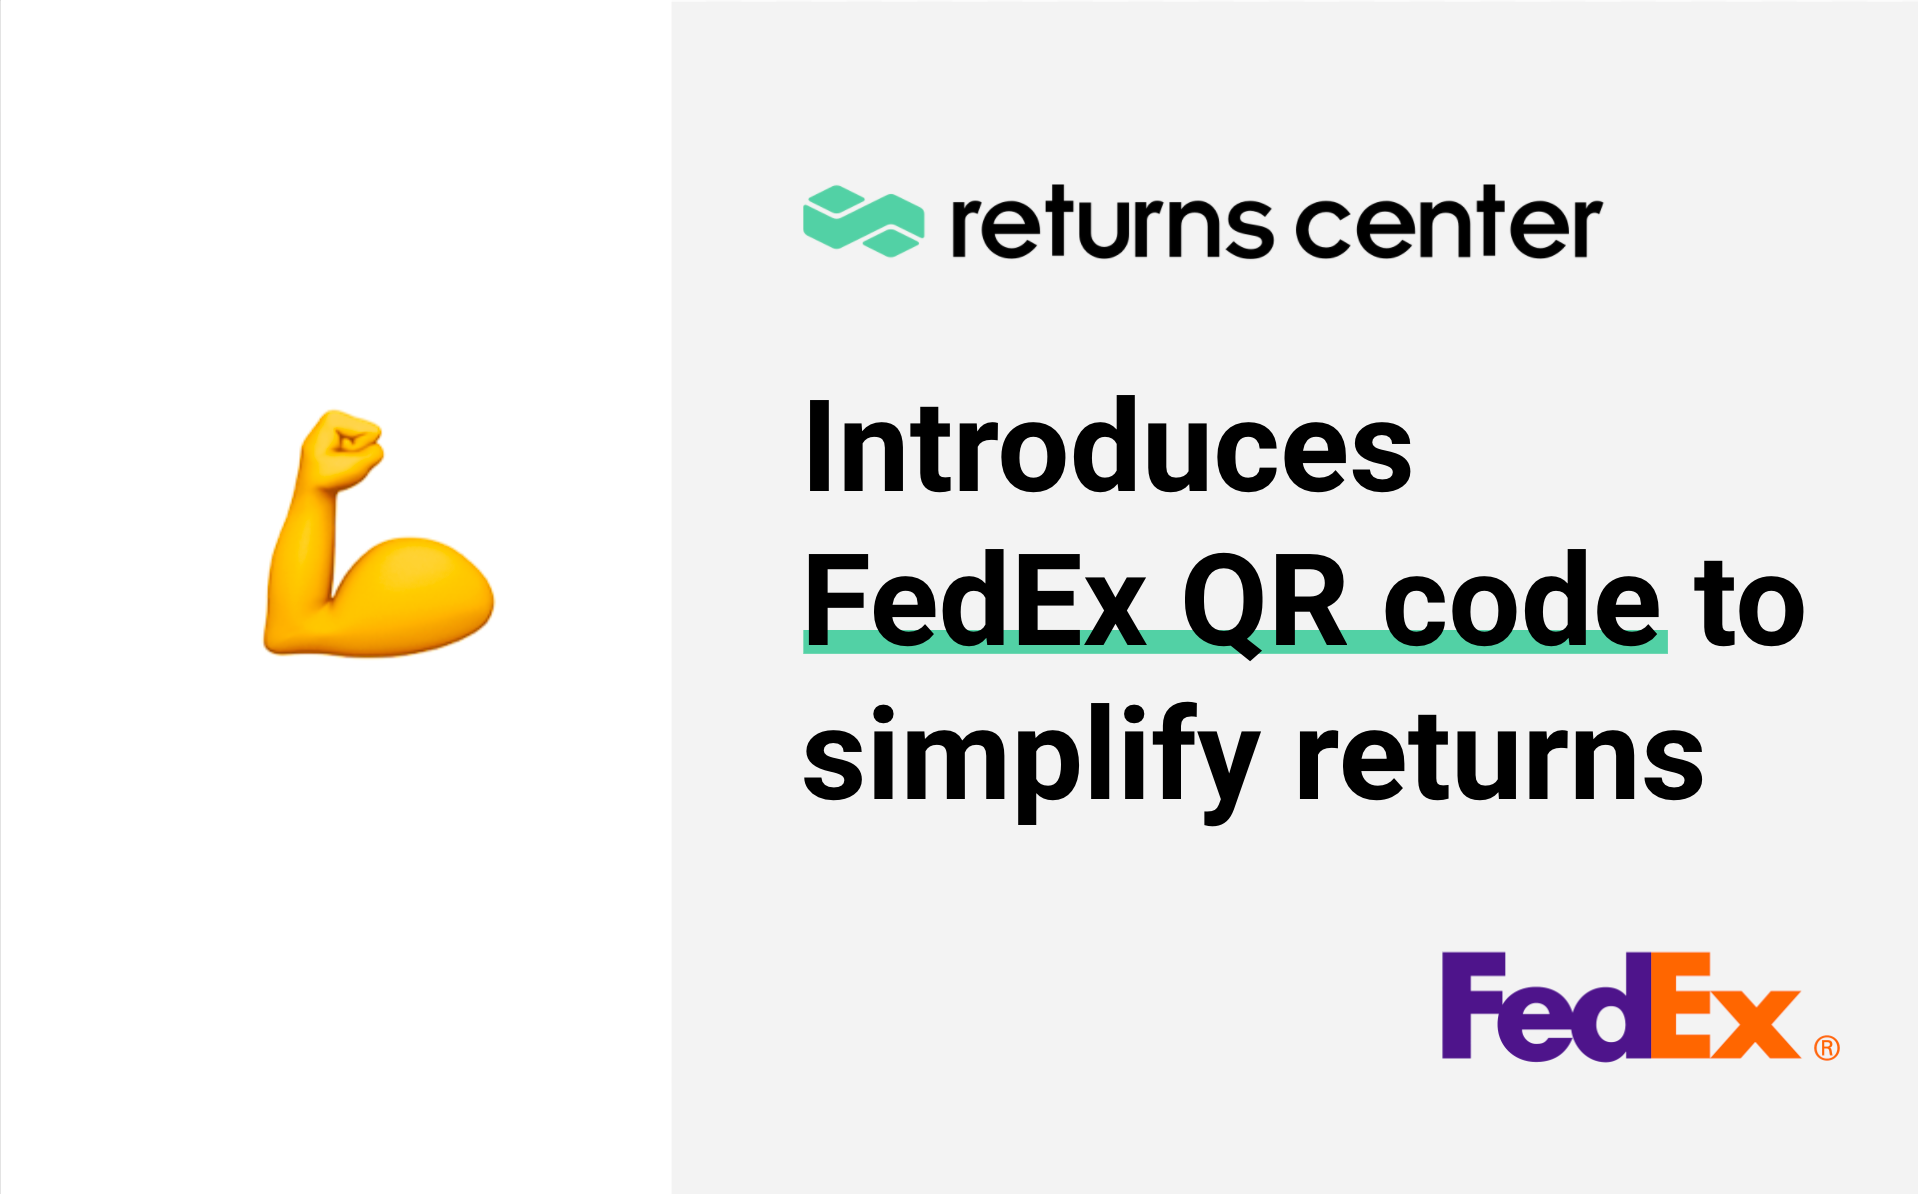 AfterShip Returns Center now supports easy drop-off at FedEx Office® or Walgreens